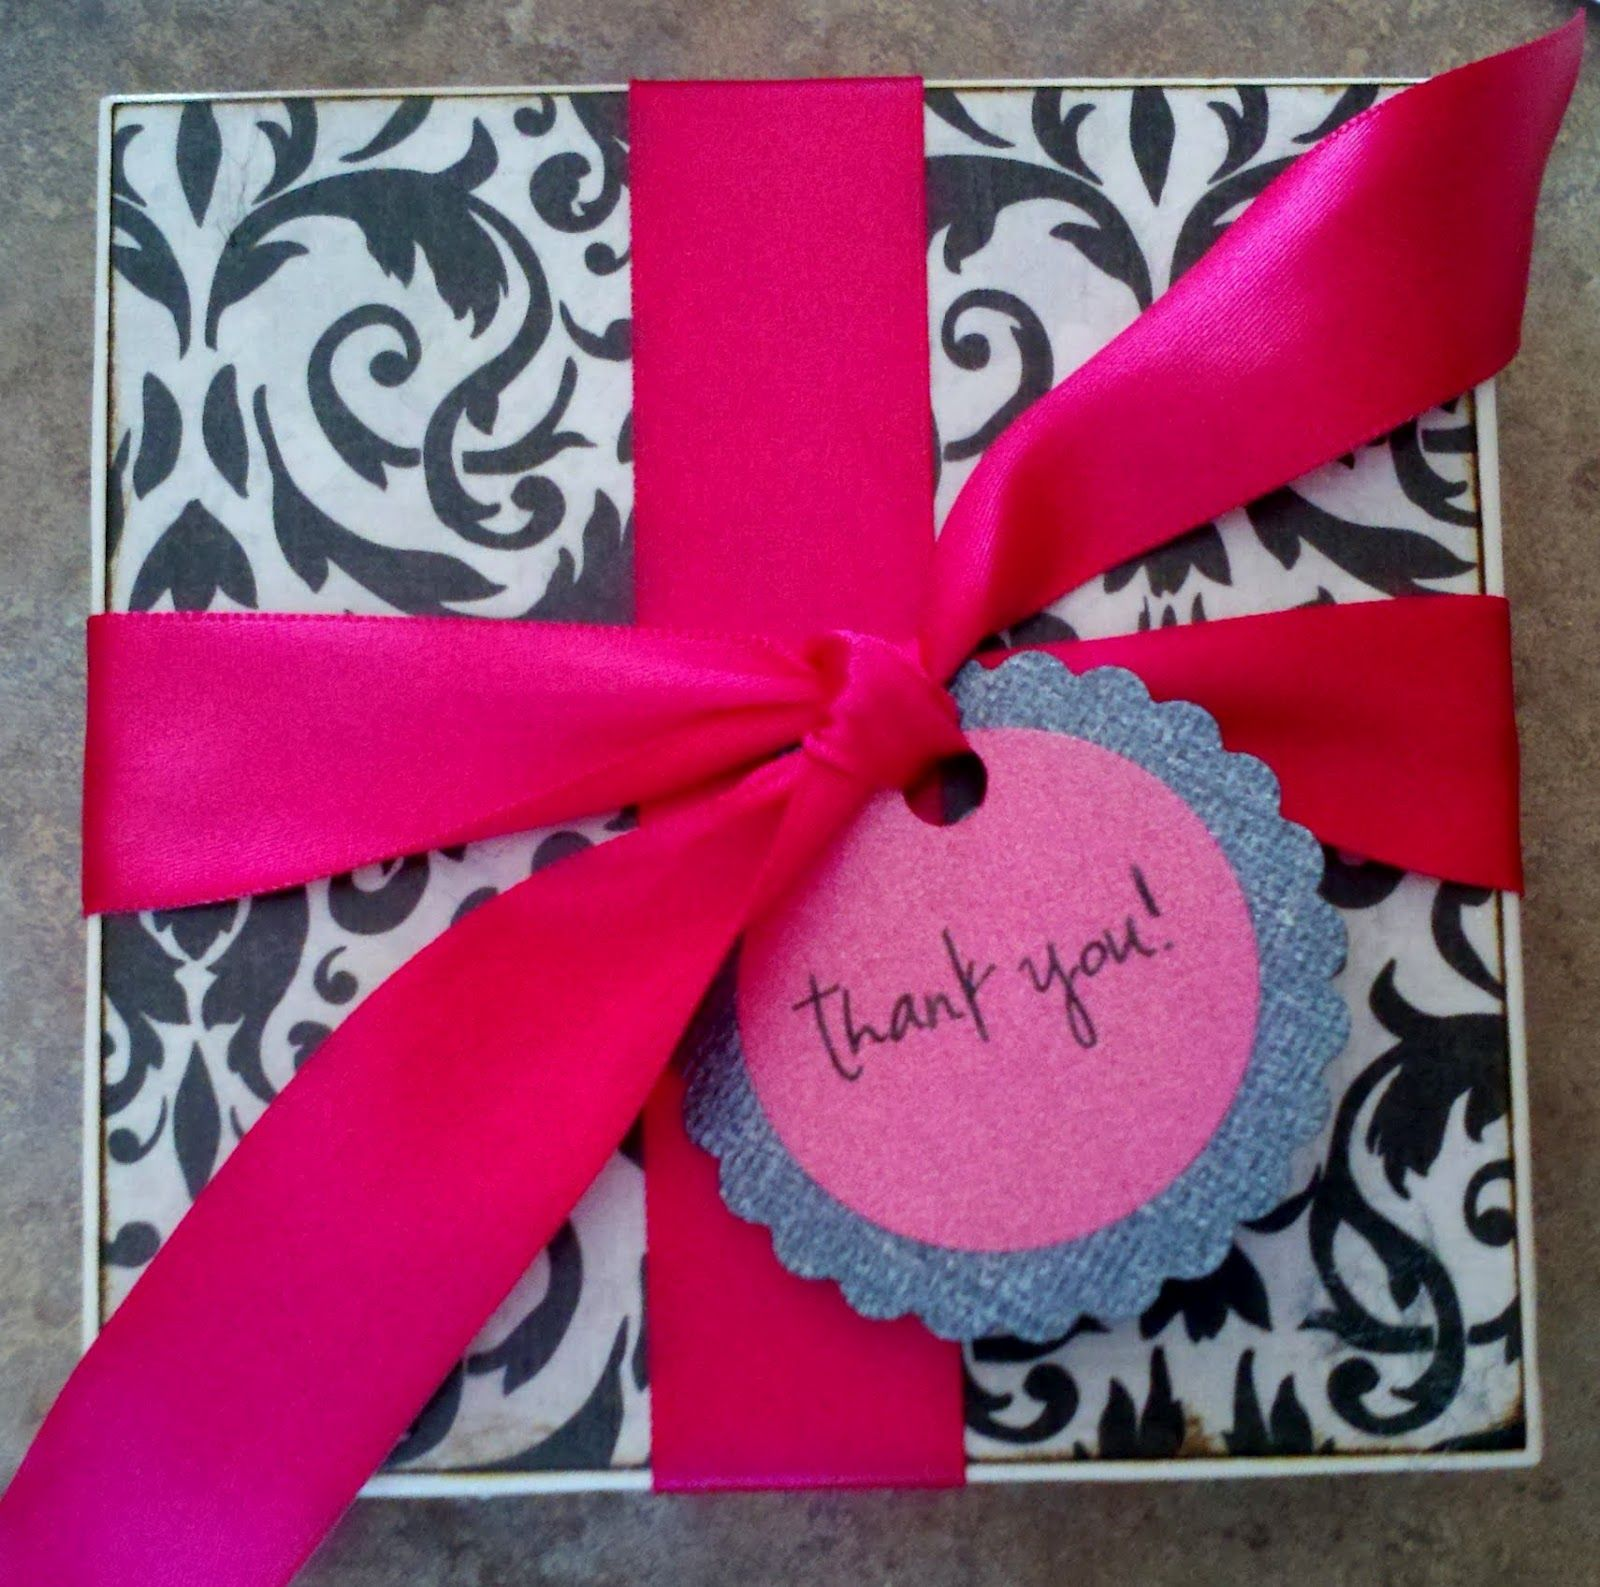 DIY tile coasters & other DIY wedding favors! OMS I LOVE this!! :D ...